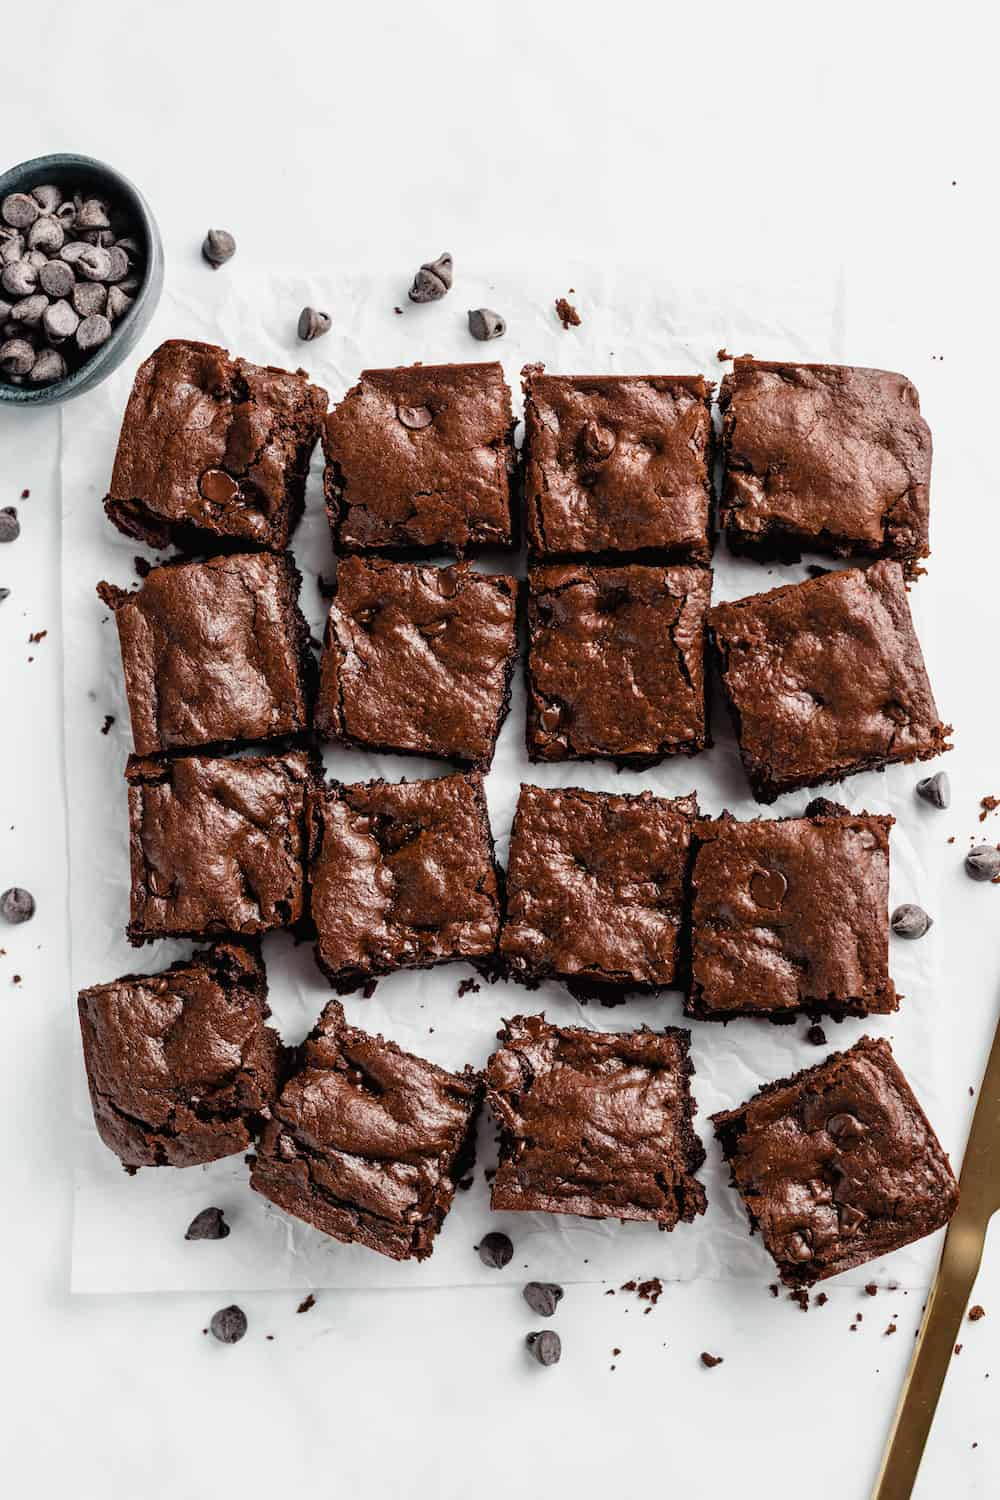 Brownies cut into squares.